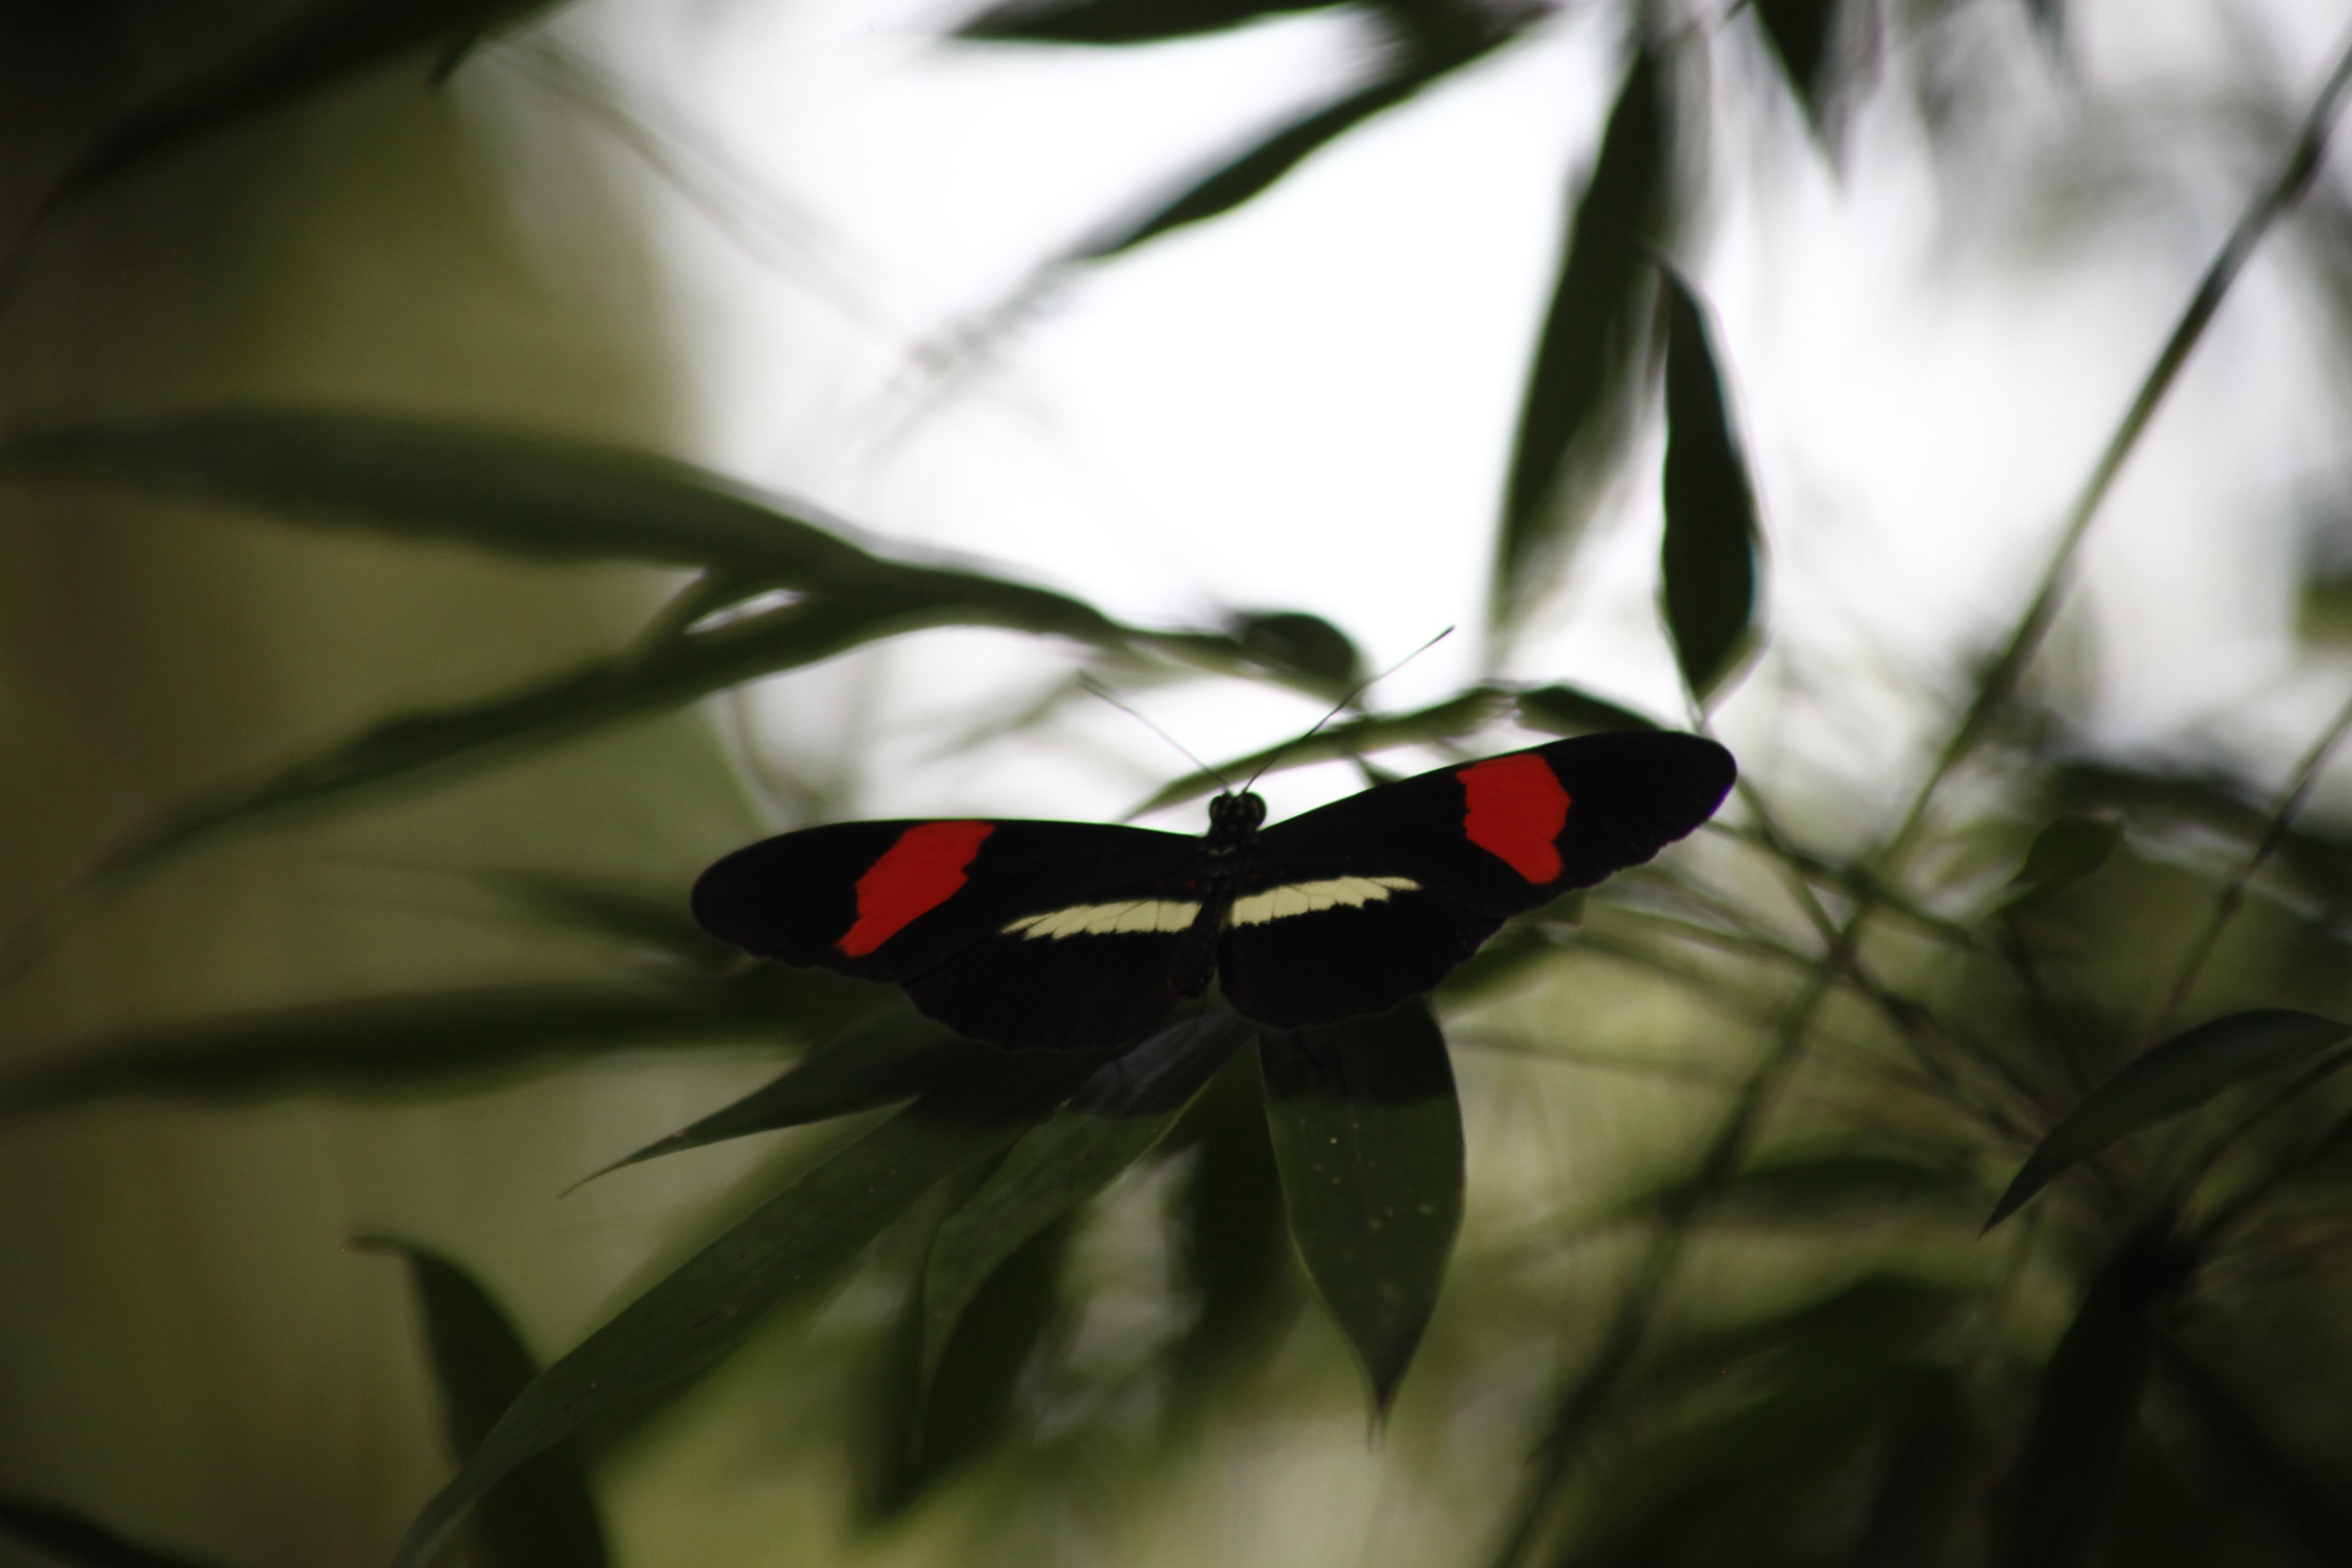 A black and red butterfly in a tree.